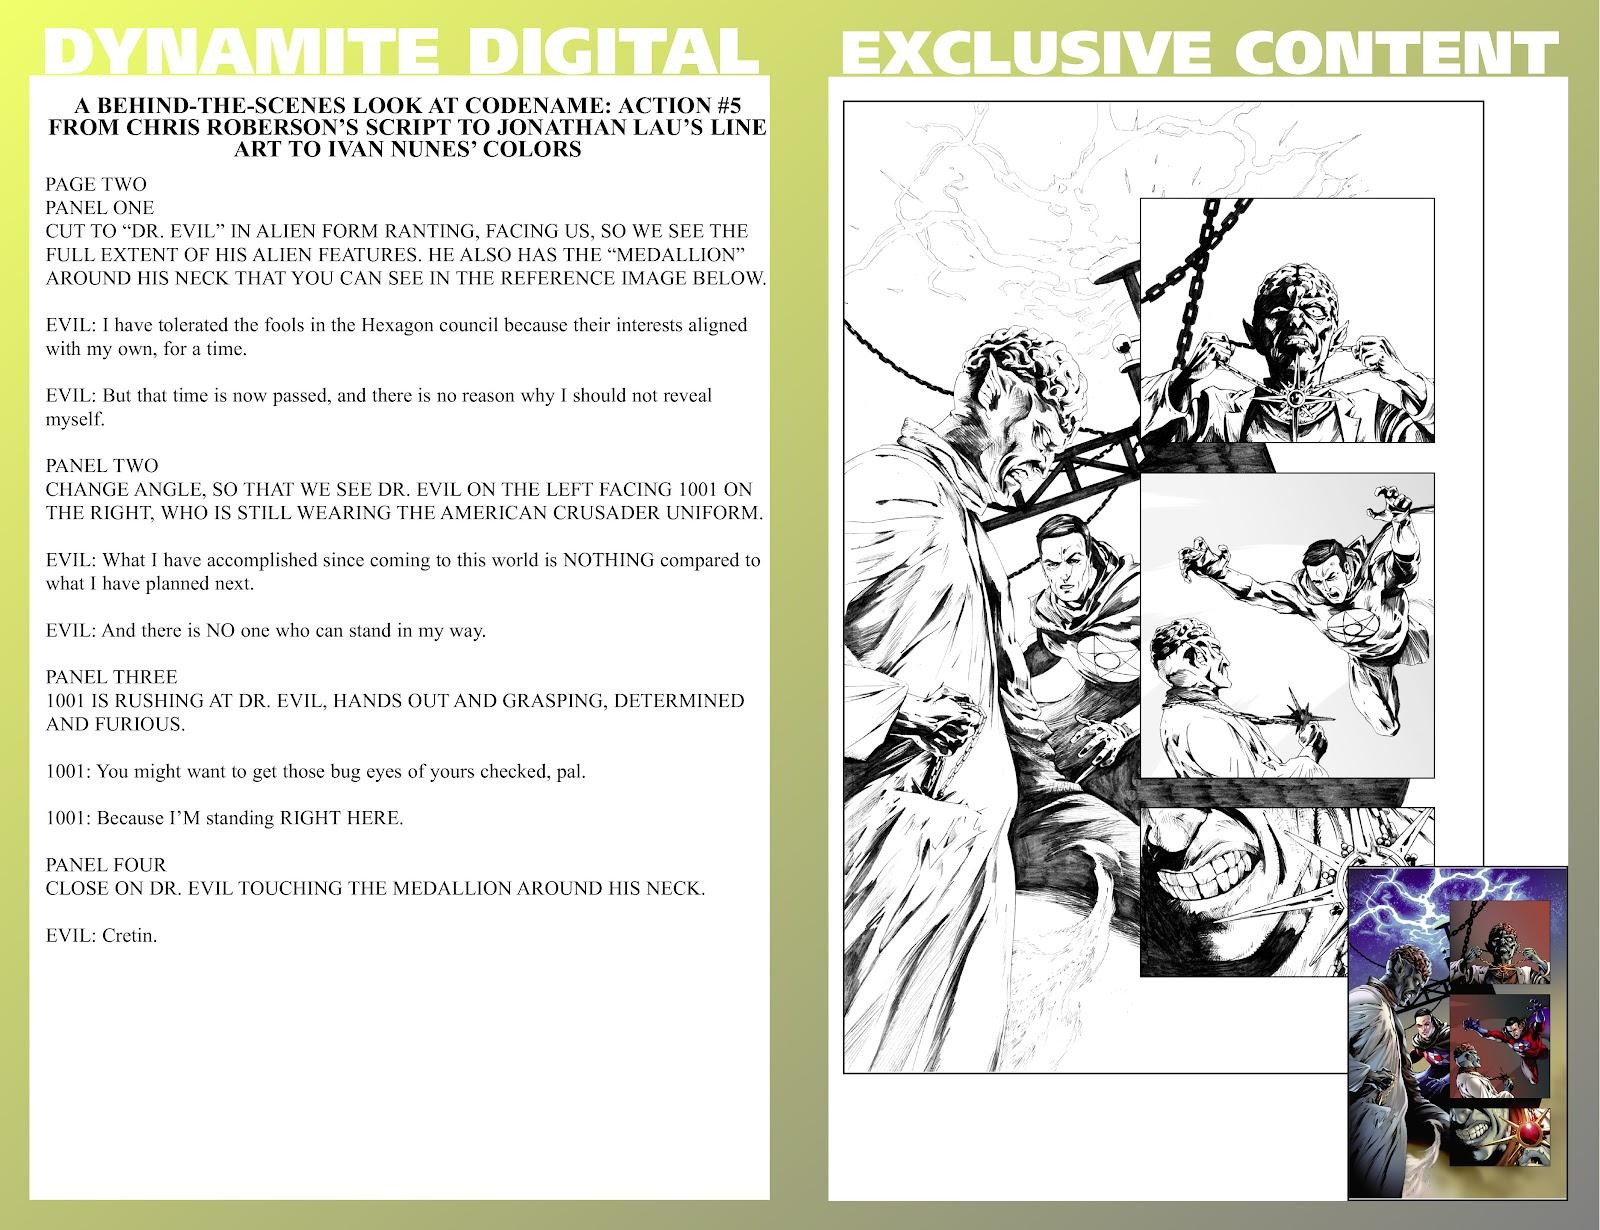 Read online Codename: Action comic -  Issue #5 - 29